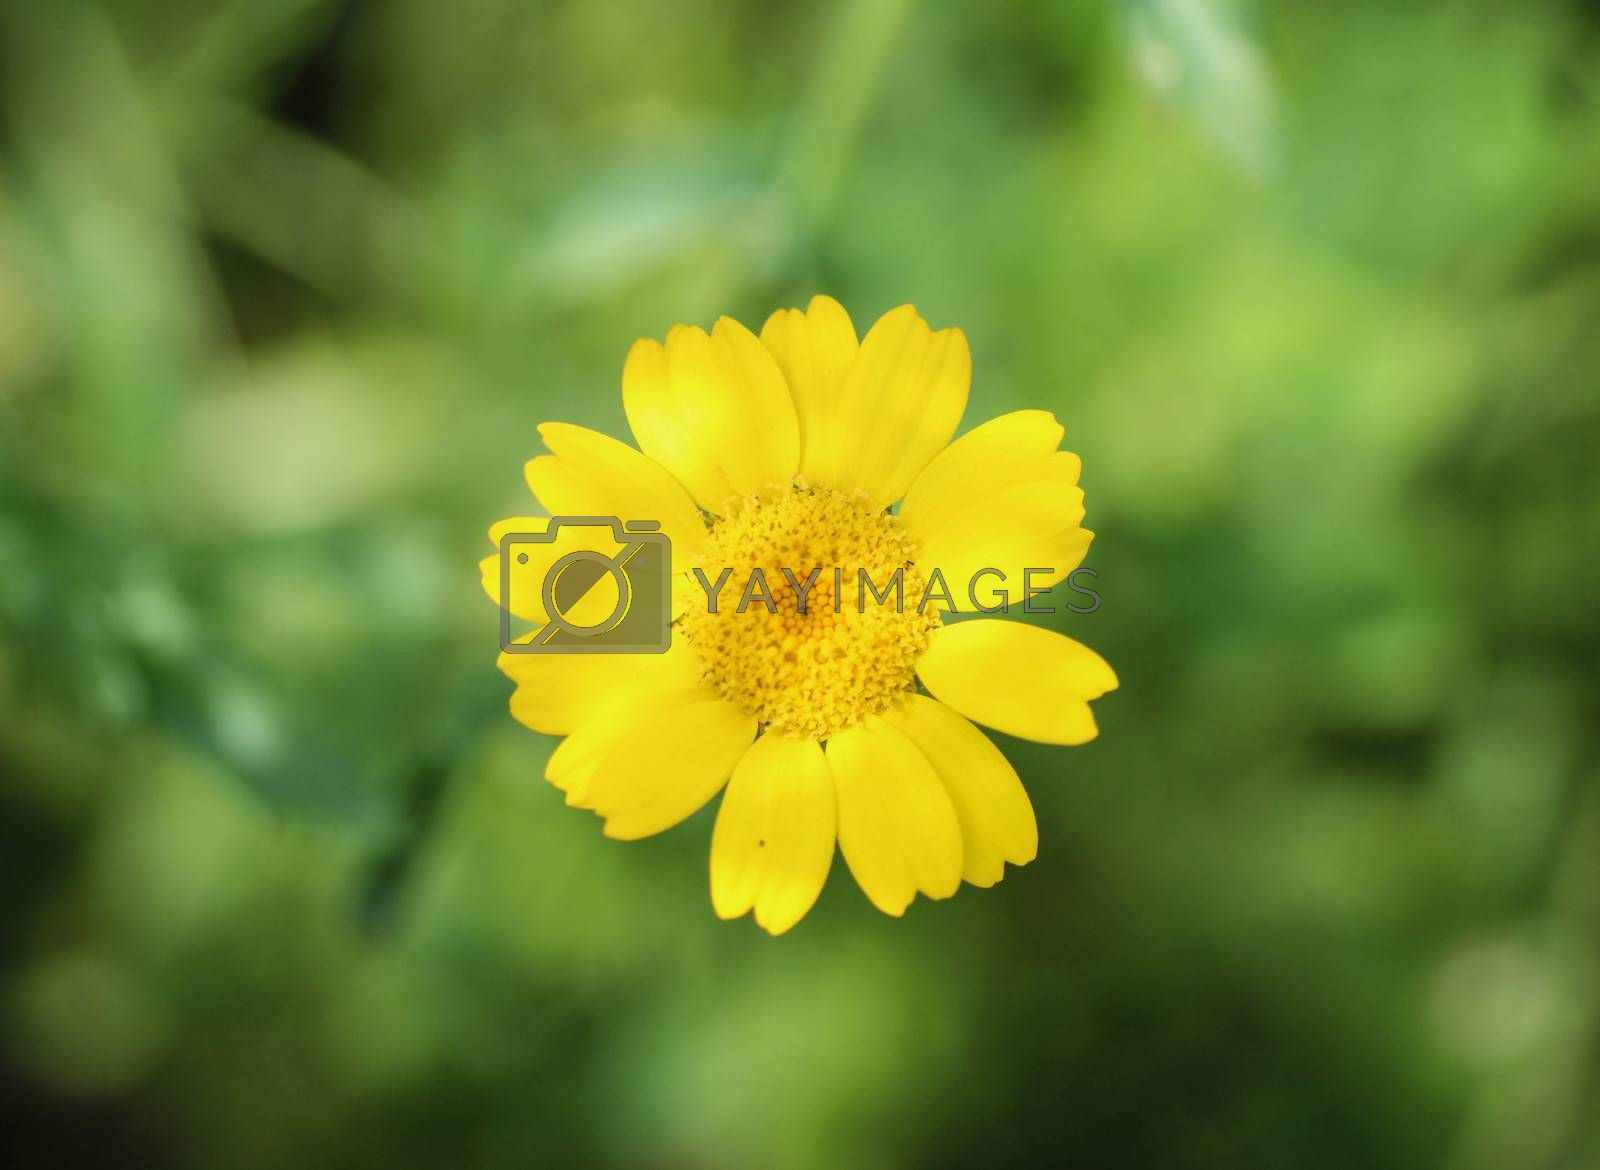 Royalty free image of Glebionis segetum flower, Common names include corn marigold and corn daisy, blooming in summer season by michaelmeijer